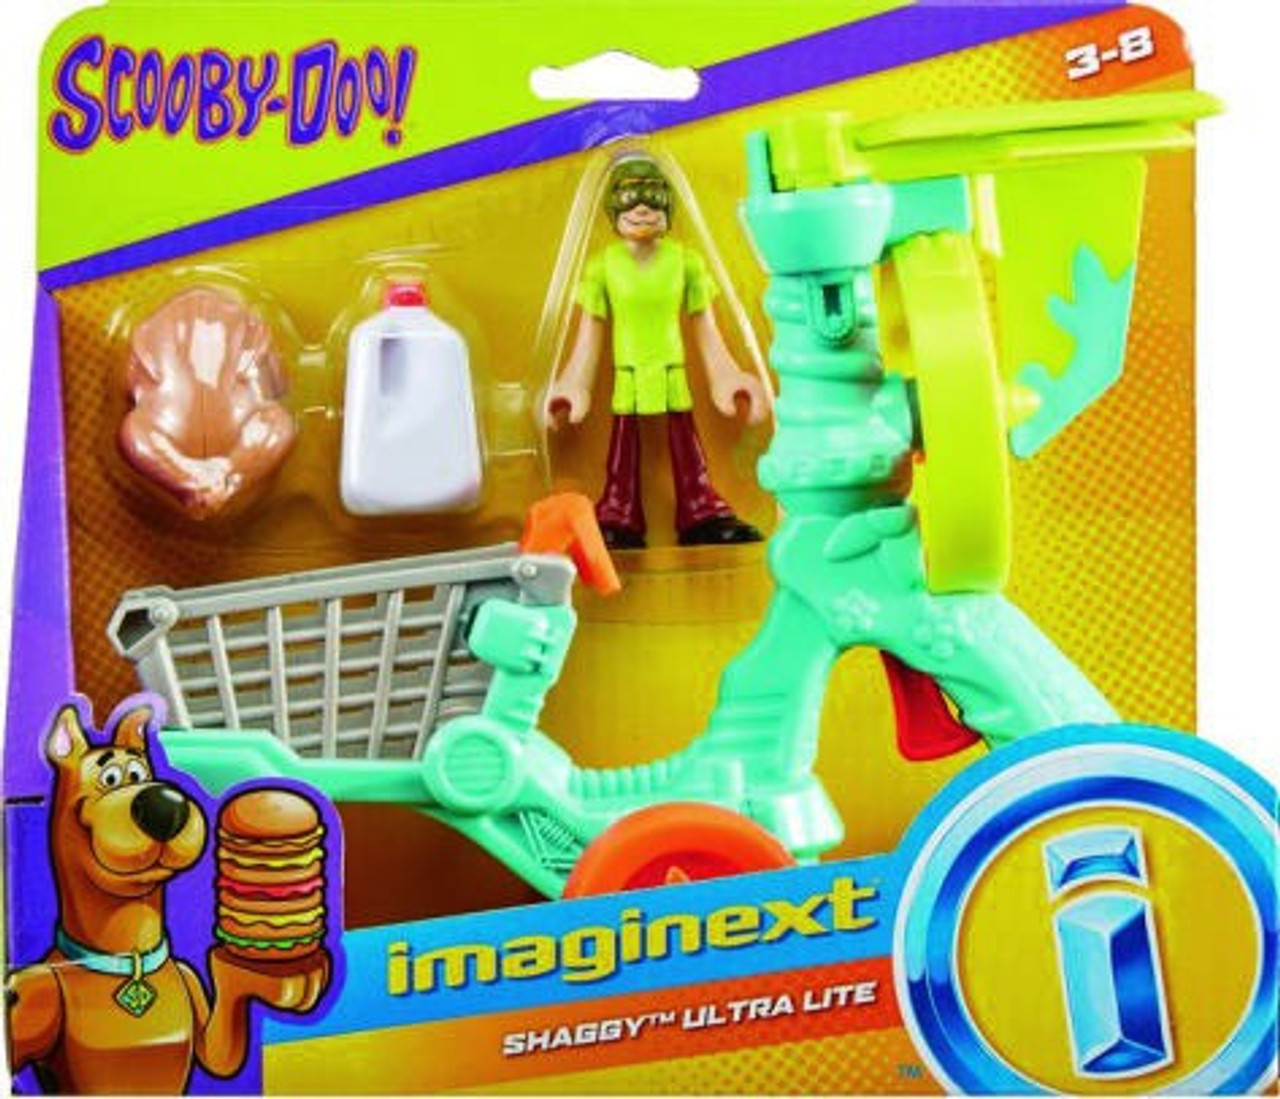 Neon Green Shirt Goes With Shaggy Roblox Fisher Price Scooby Doo Imaginext Shaggy Ultra Lite 3 Figure Set Toywiz